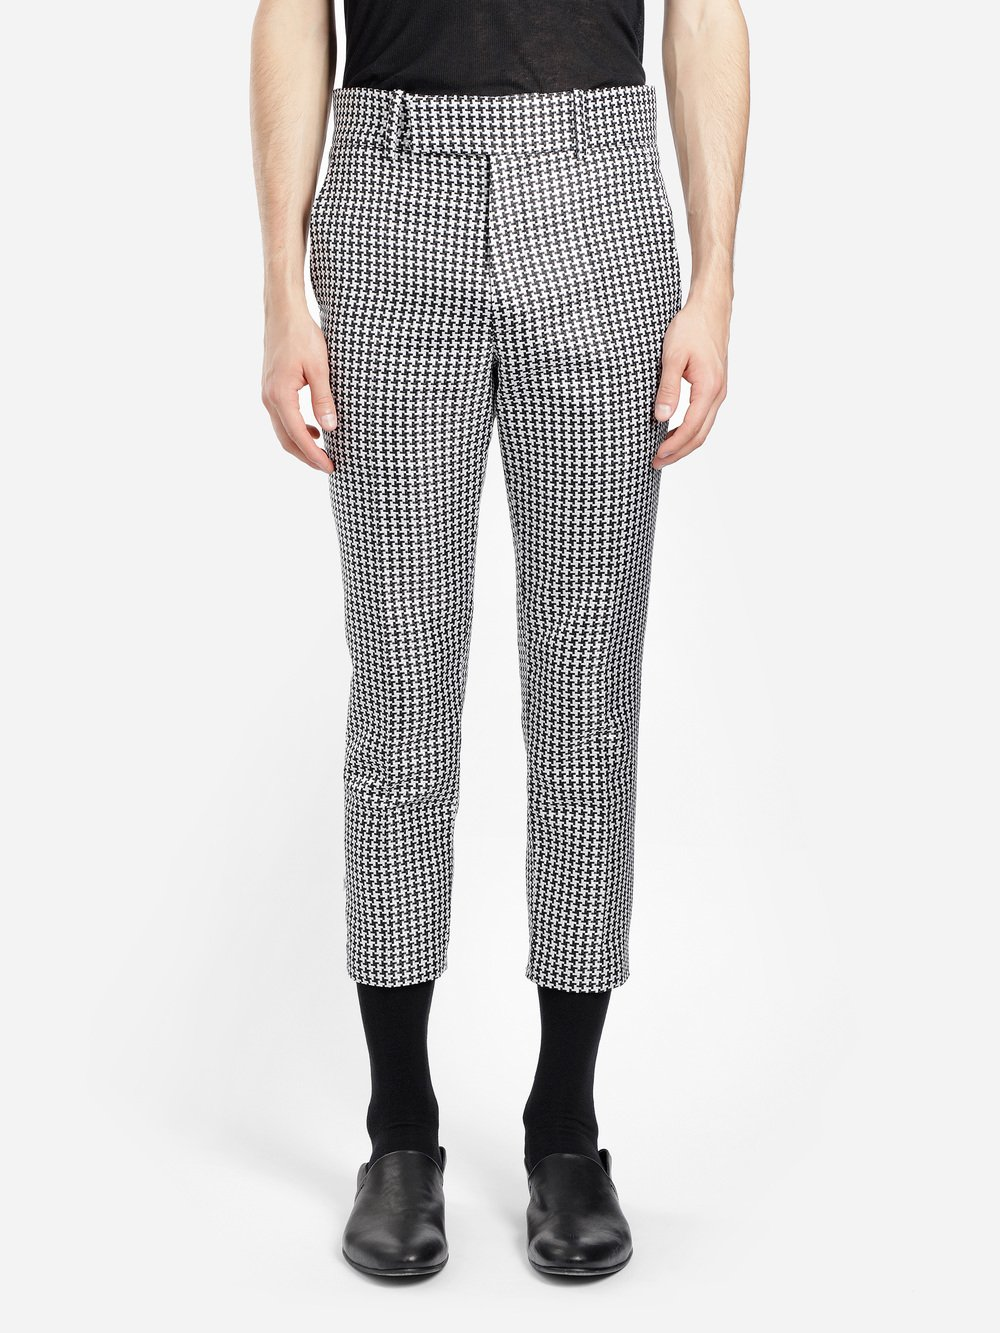 Haider Ackermann Pants HAIDER ACKERMANN TROUSERS